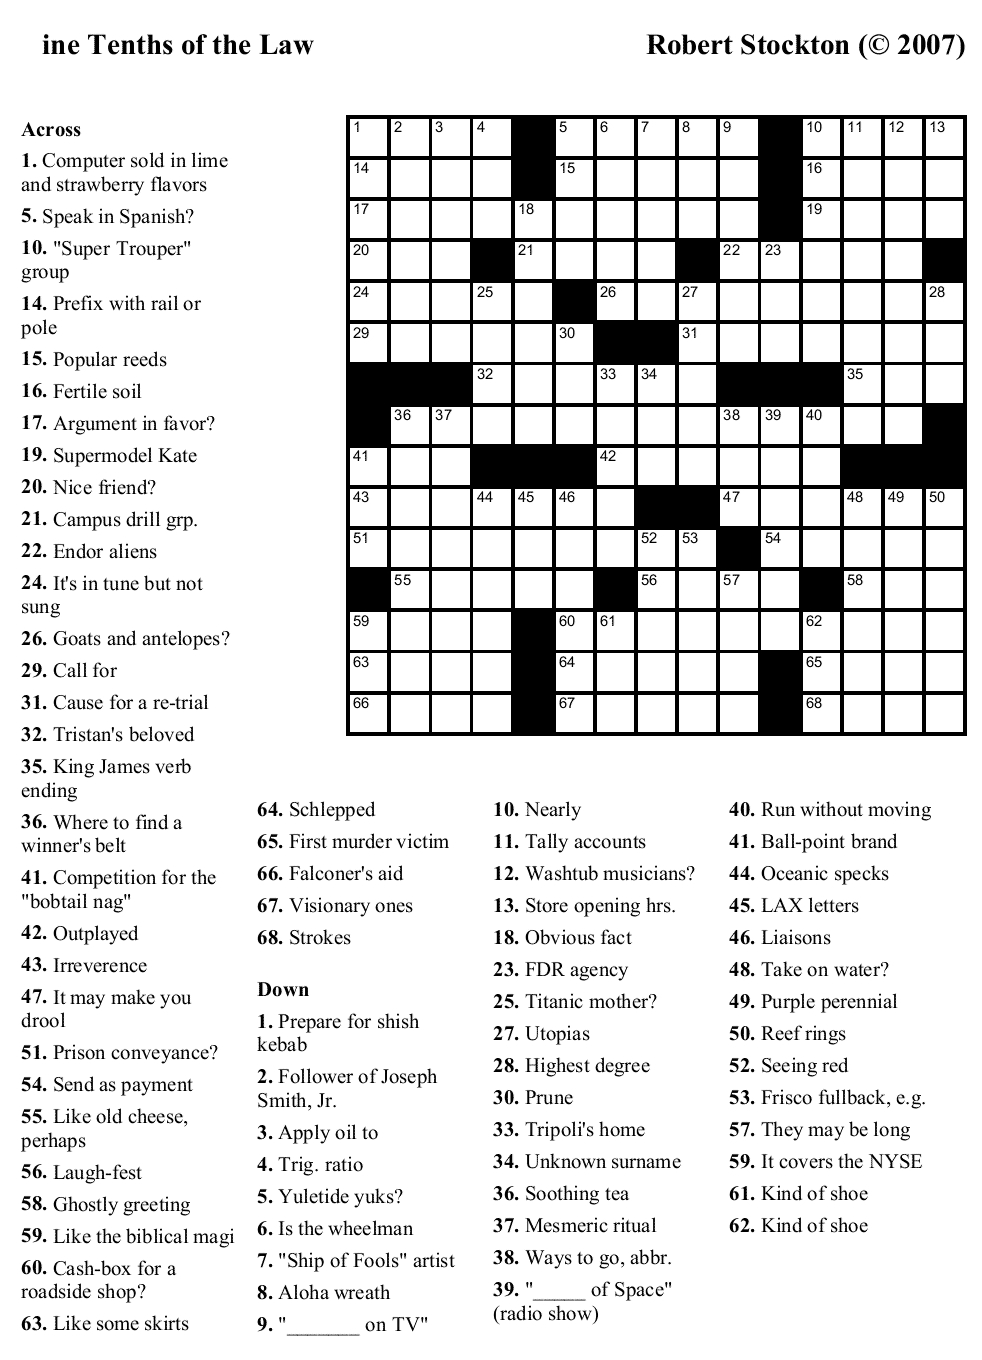 Crossword Puzzles Printable - Yahoo Image Search Results | Crossword - Printable Sports Crossword Puzzles